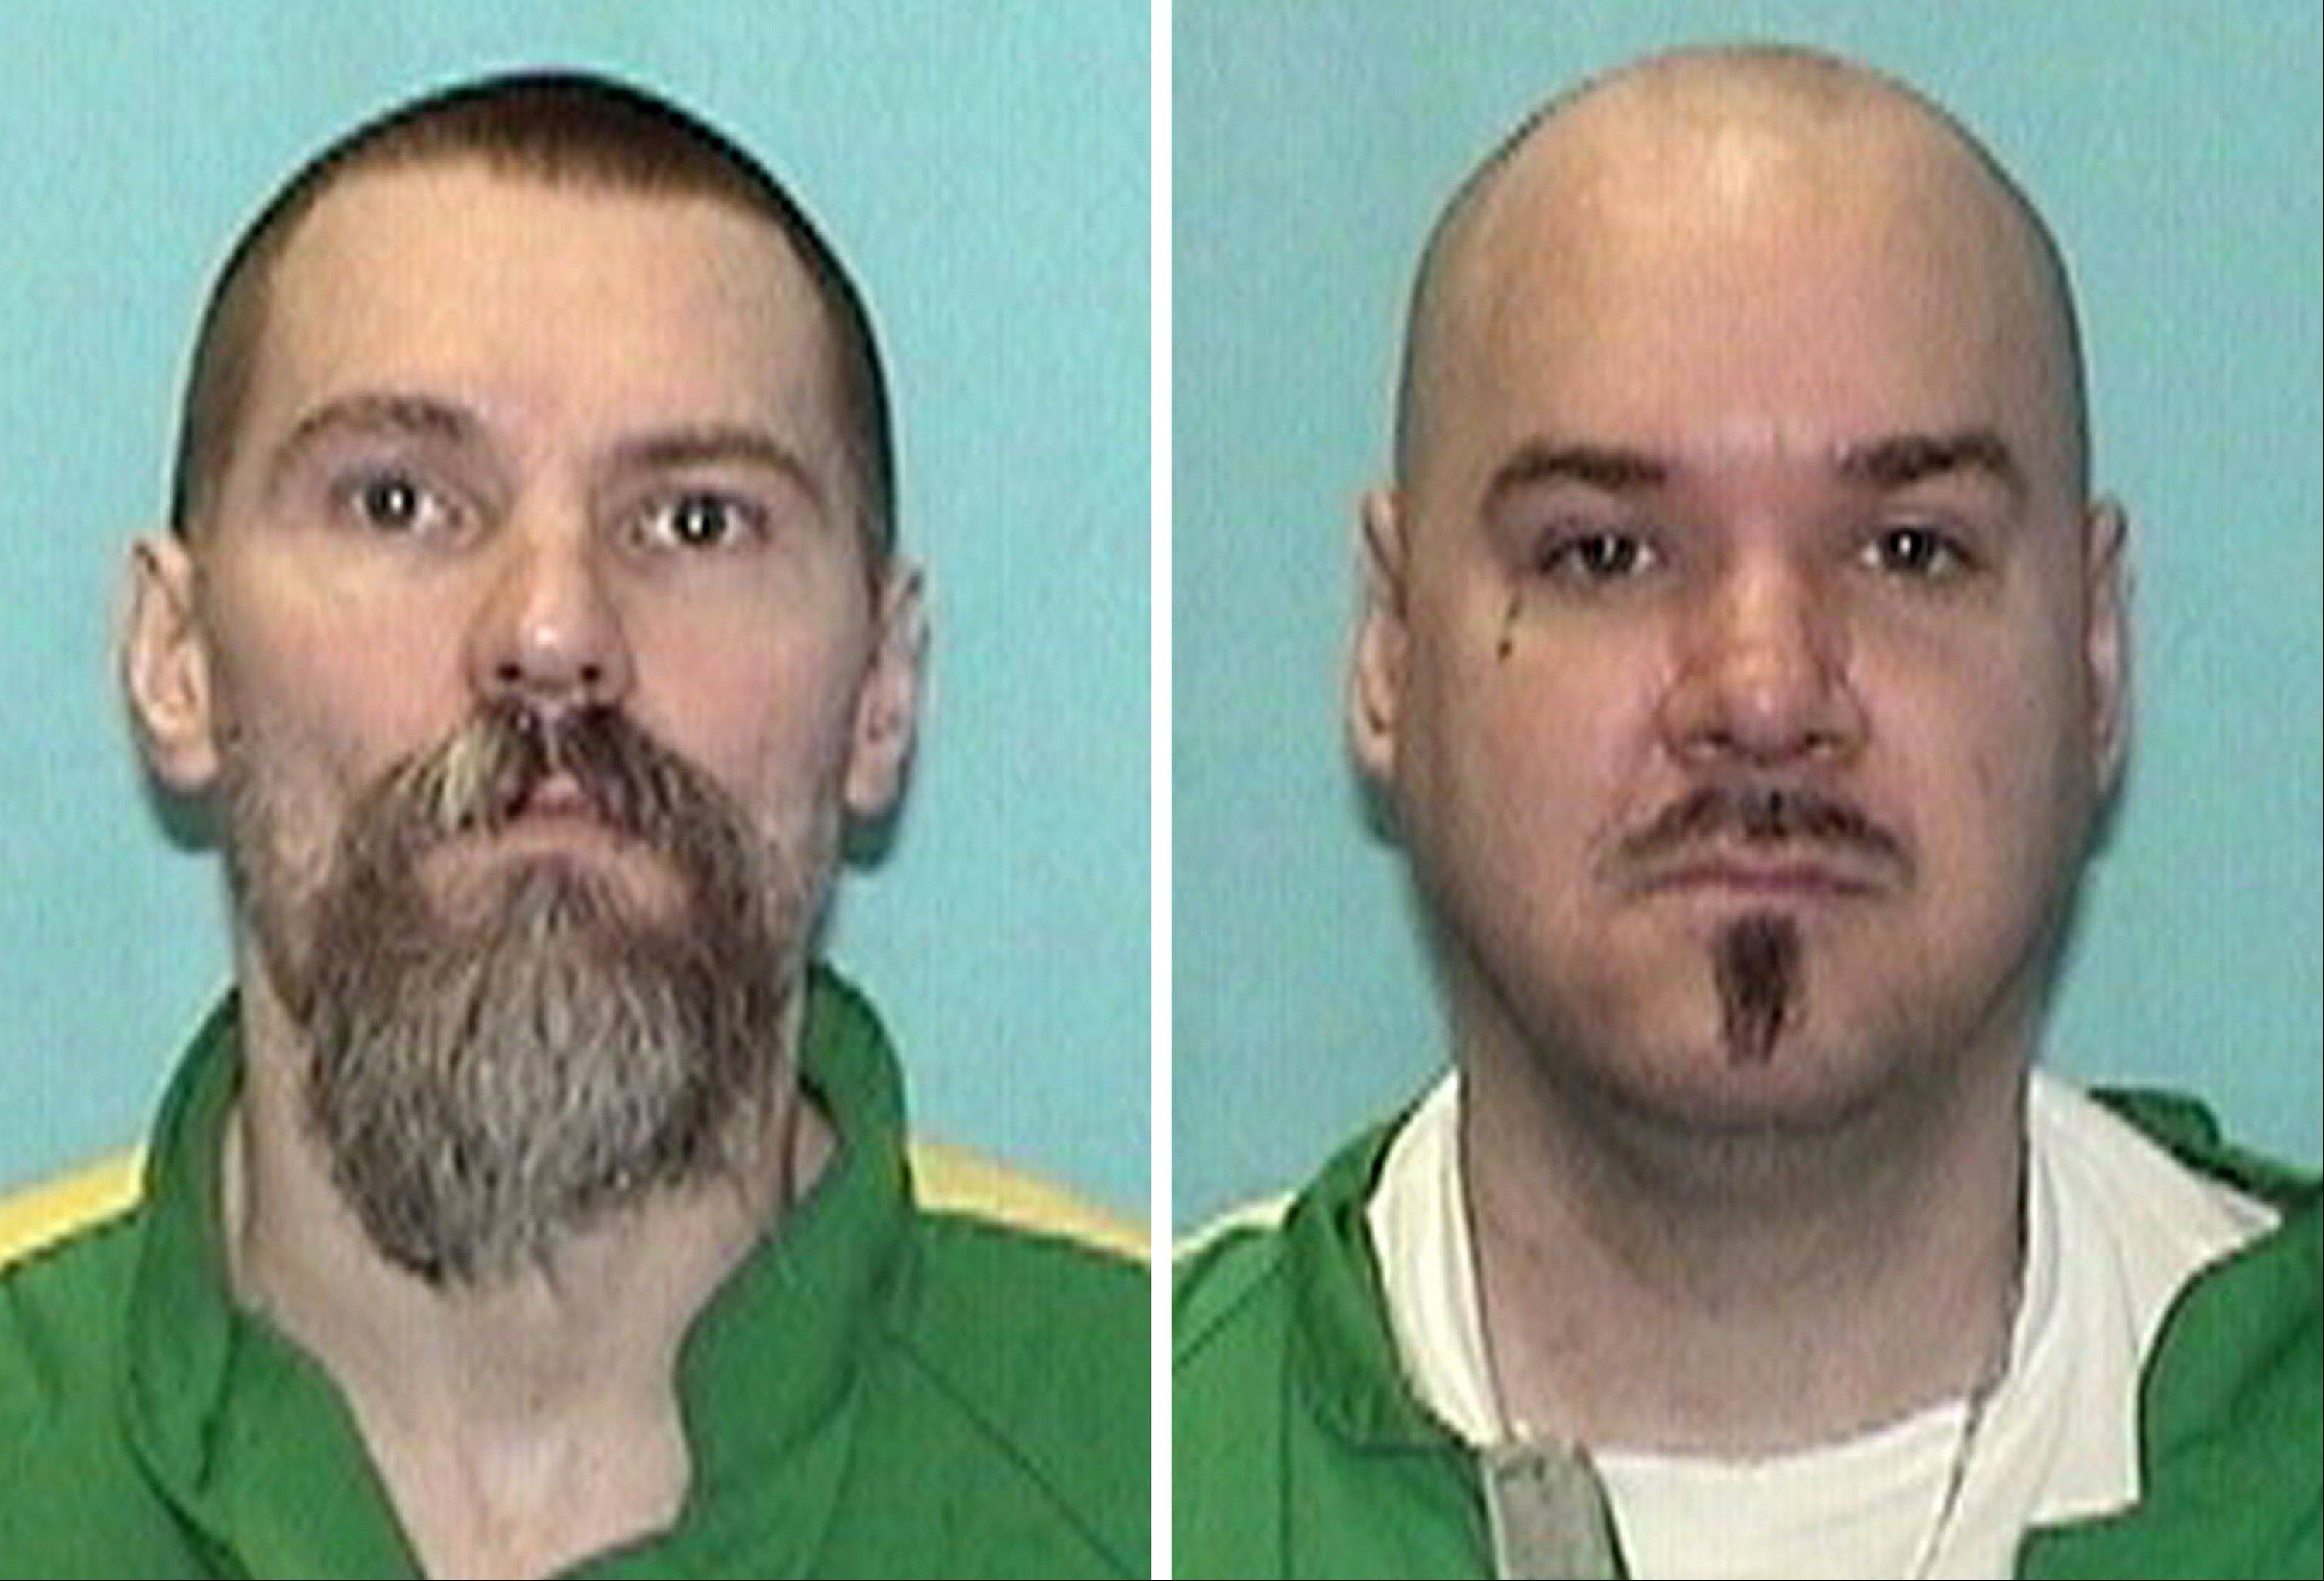 This combination photo provided by The Illinois Department of Corrections shows inmates Gregory Rhodes, left, and Robert Boyd, right, who are among the more than 100 inmates that could be transferred from the high-security Tamms prison to Pontiac. Boyd and Rhodes were both shipped to Tamms after getting in trouble at Pontiac and though not moved yet, could be returned to the very place where their troubles began.